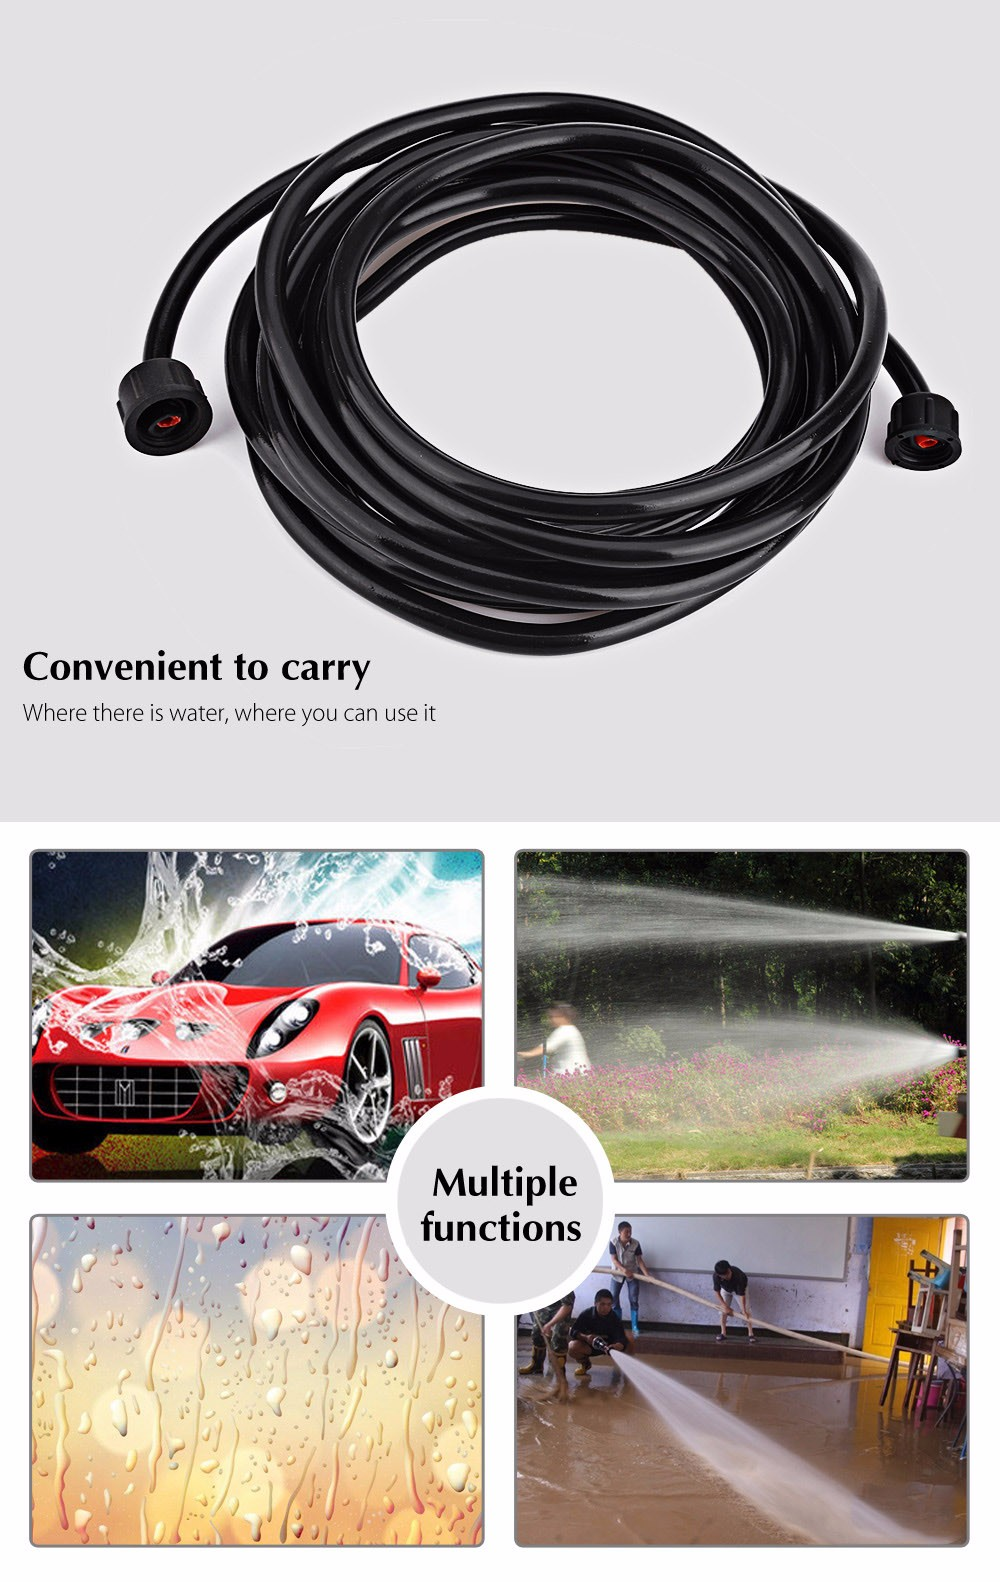 BOJIN 12V 36W High Pressure Cleaning Pump Car Washer Self-priming Vehicular Wash Device